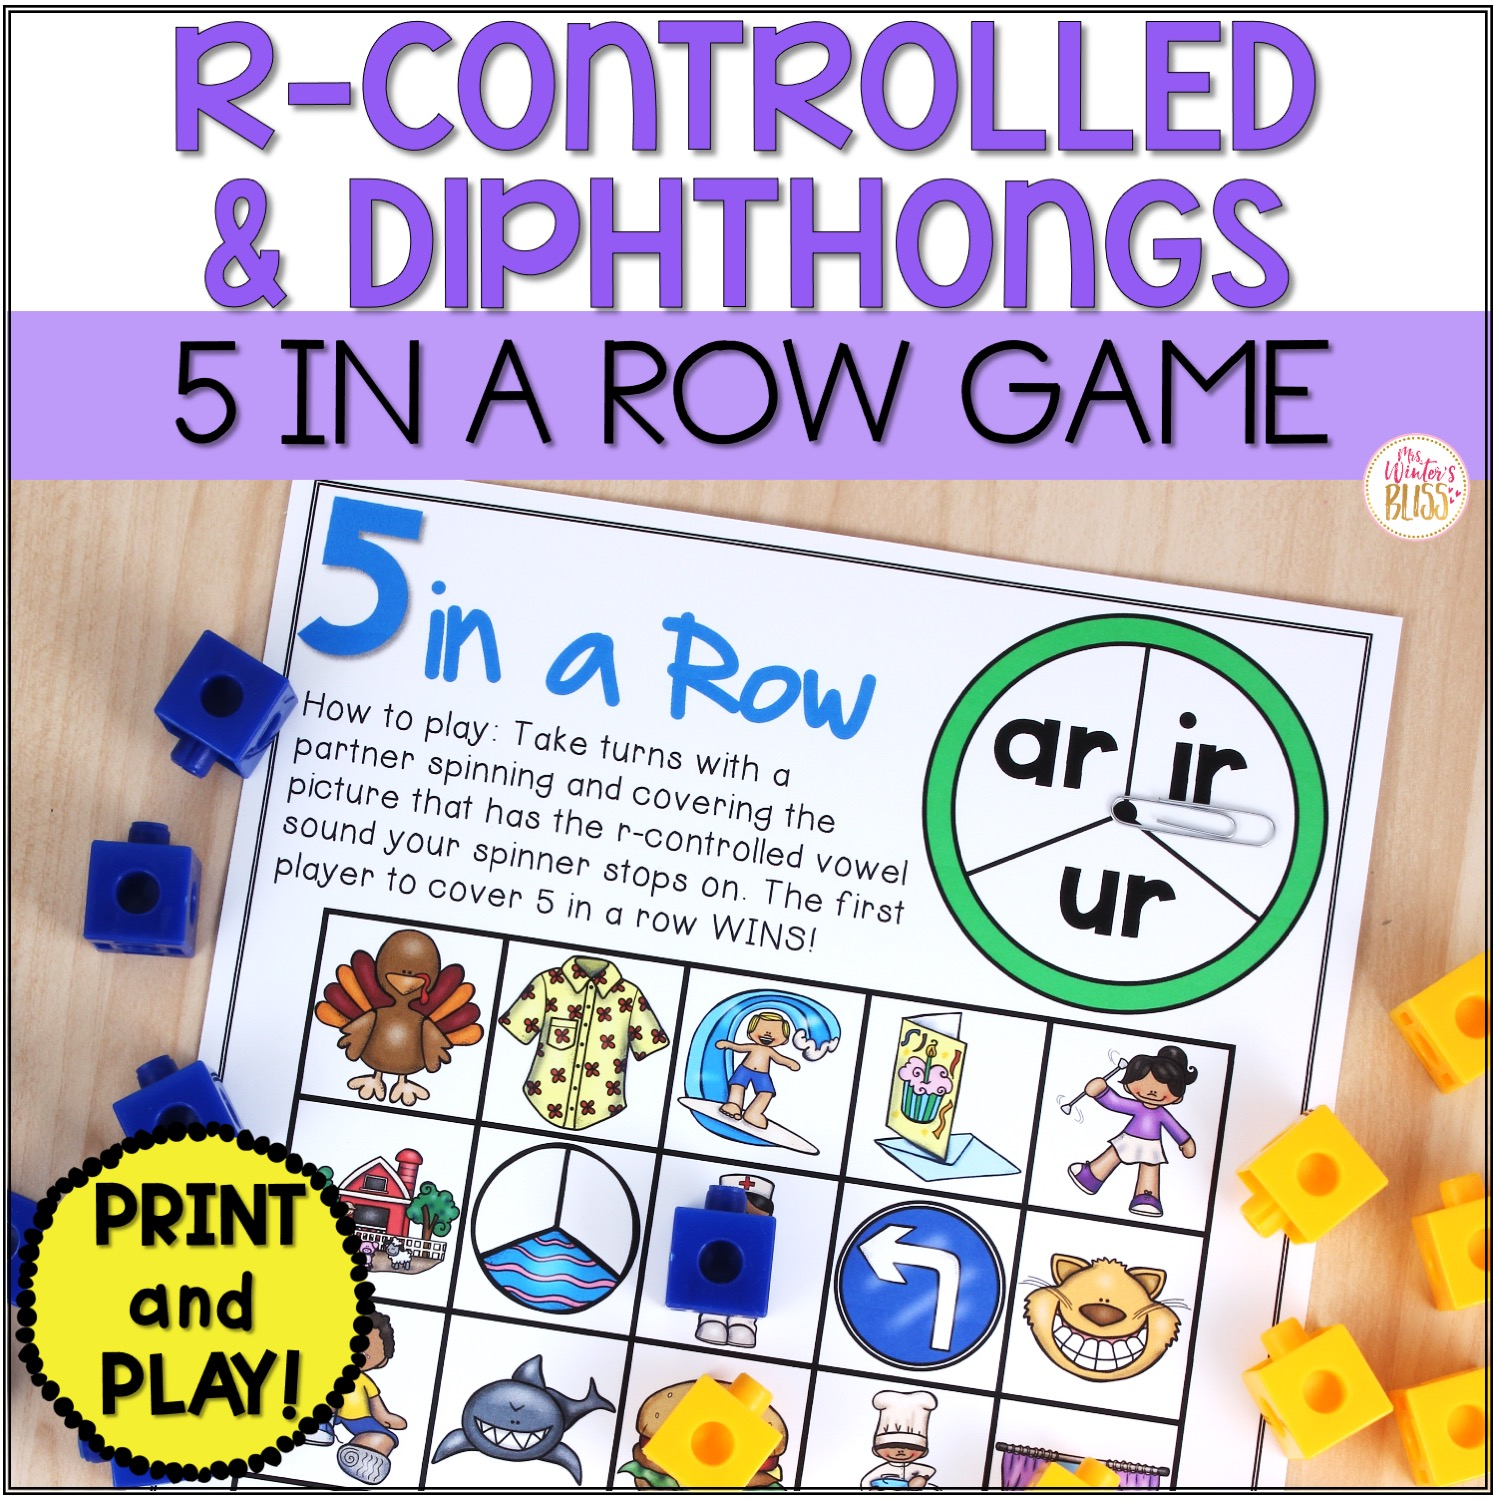 hight resolution of Phonemic Awareness Activities - R Controlled Vowels \u0026 Diphthongs Worksheet  Games - Mrs. Winter's Bliss